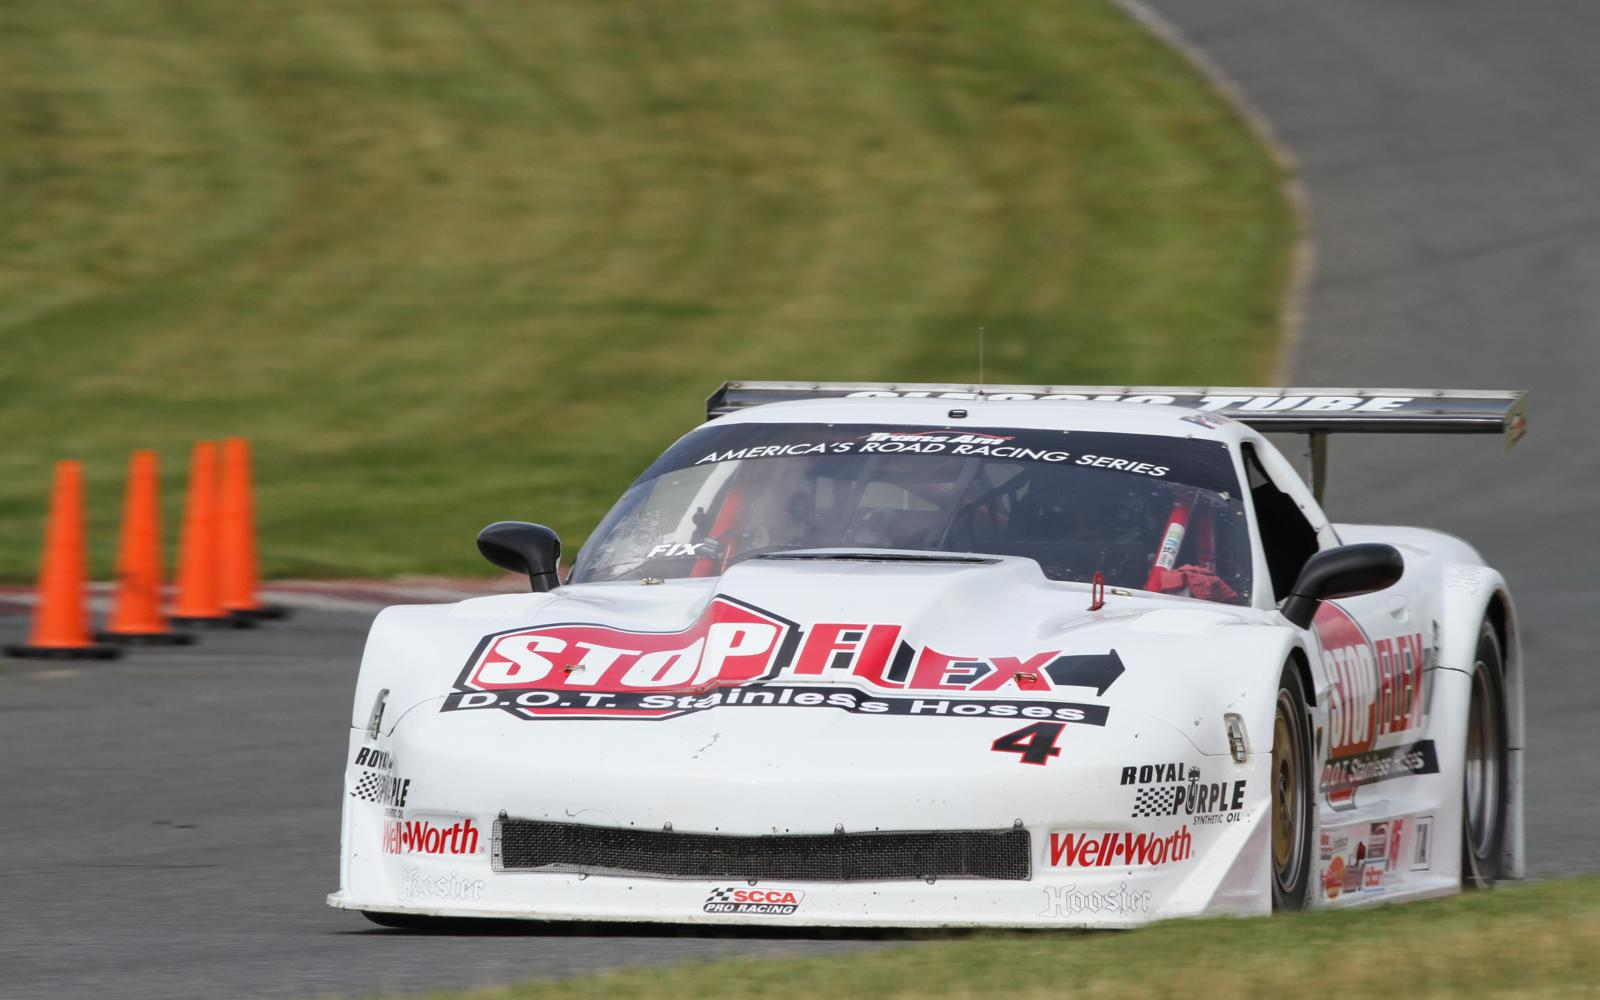 PAUL FIX TAKES NEW JERSEY POLE, THIRD STRAIGHT NUMBER ONE QUALIFIER SPOT